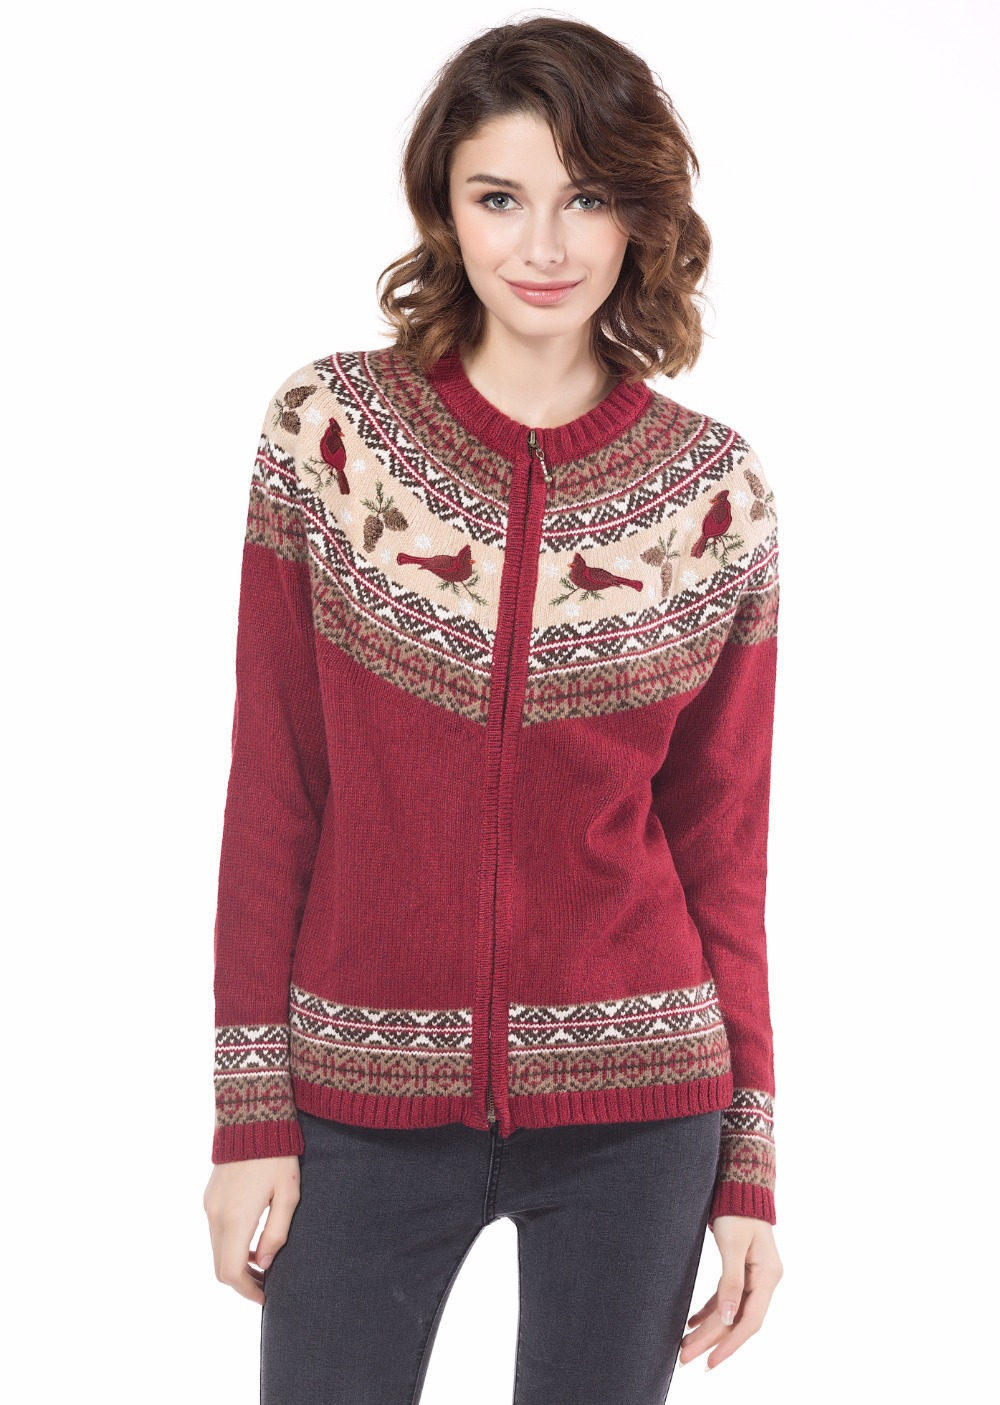 Red Sweaters For Women Photo Album - Asianfashion